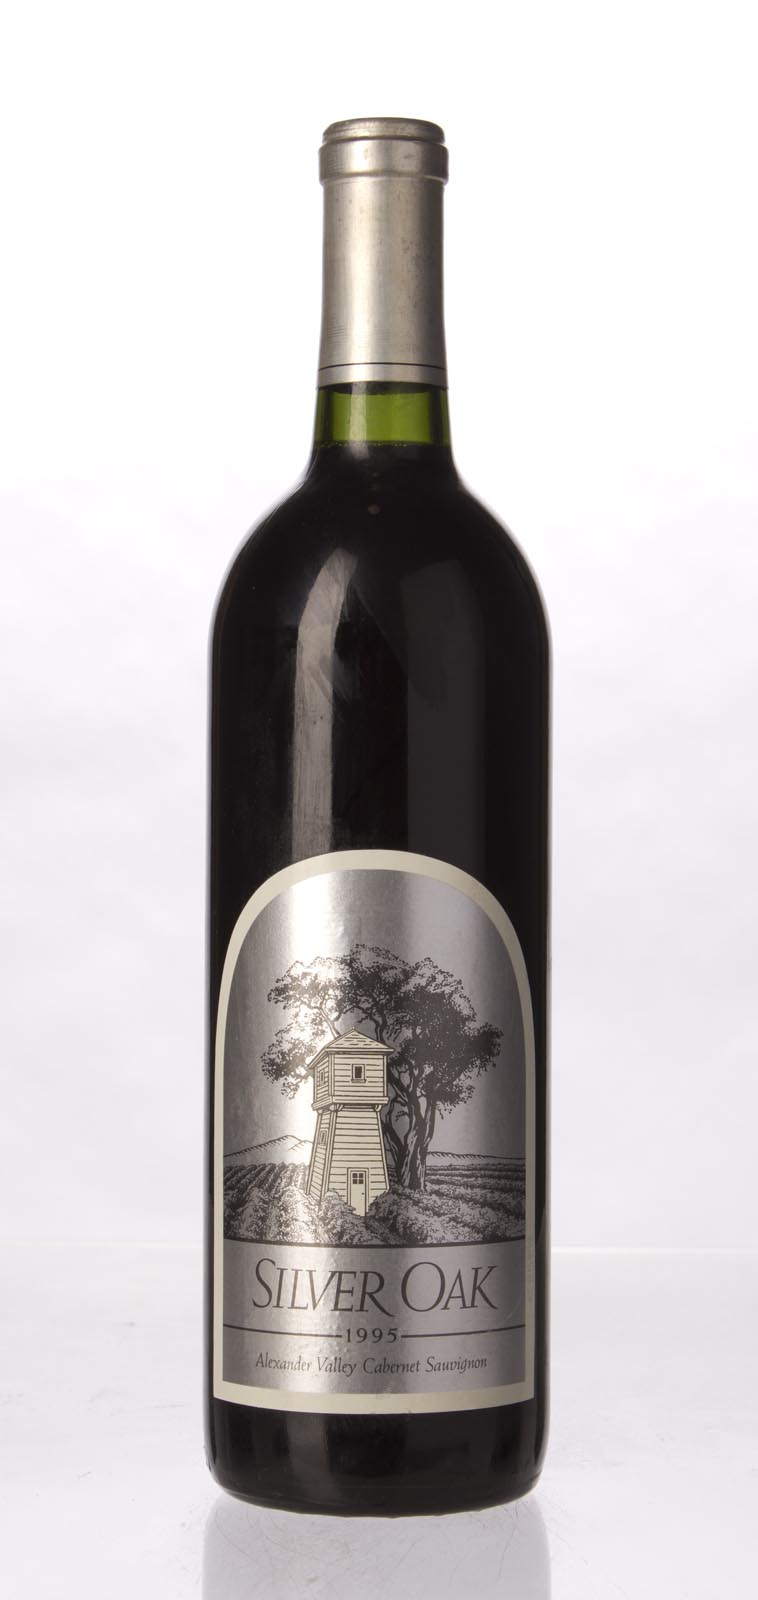 Silver Oak Cabernet Sauvignon Alexander Valley 1995, 750mL (WA94) from The BPW - Merchants of rare and fine wines.